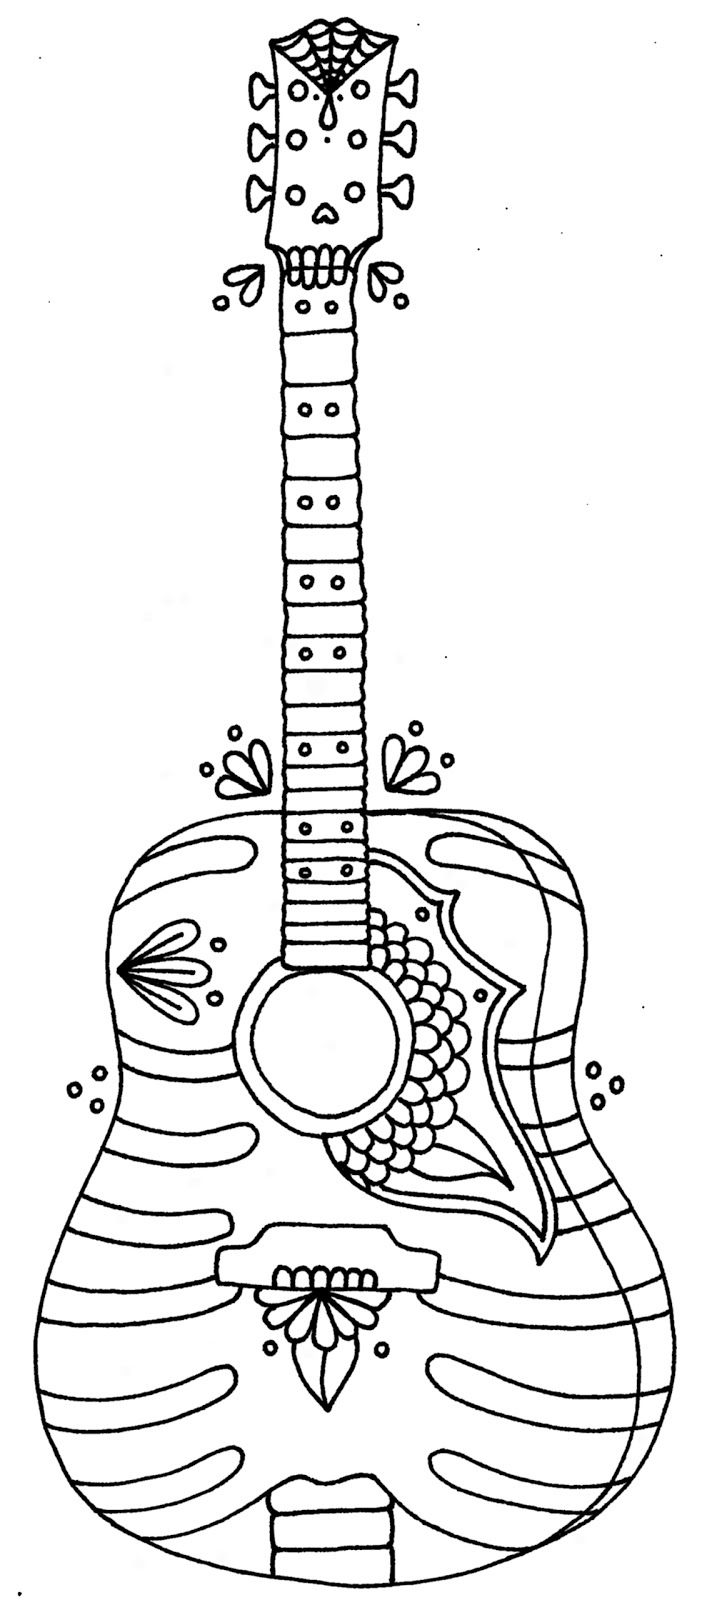 gitar coloring pages - photo#26